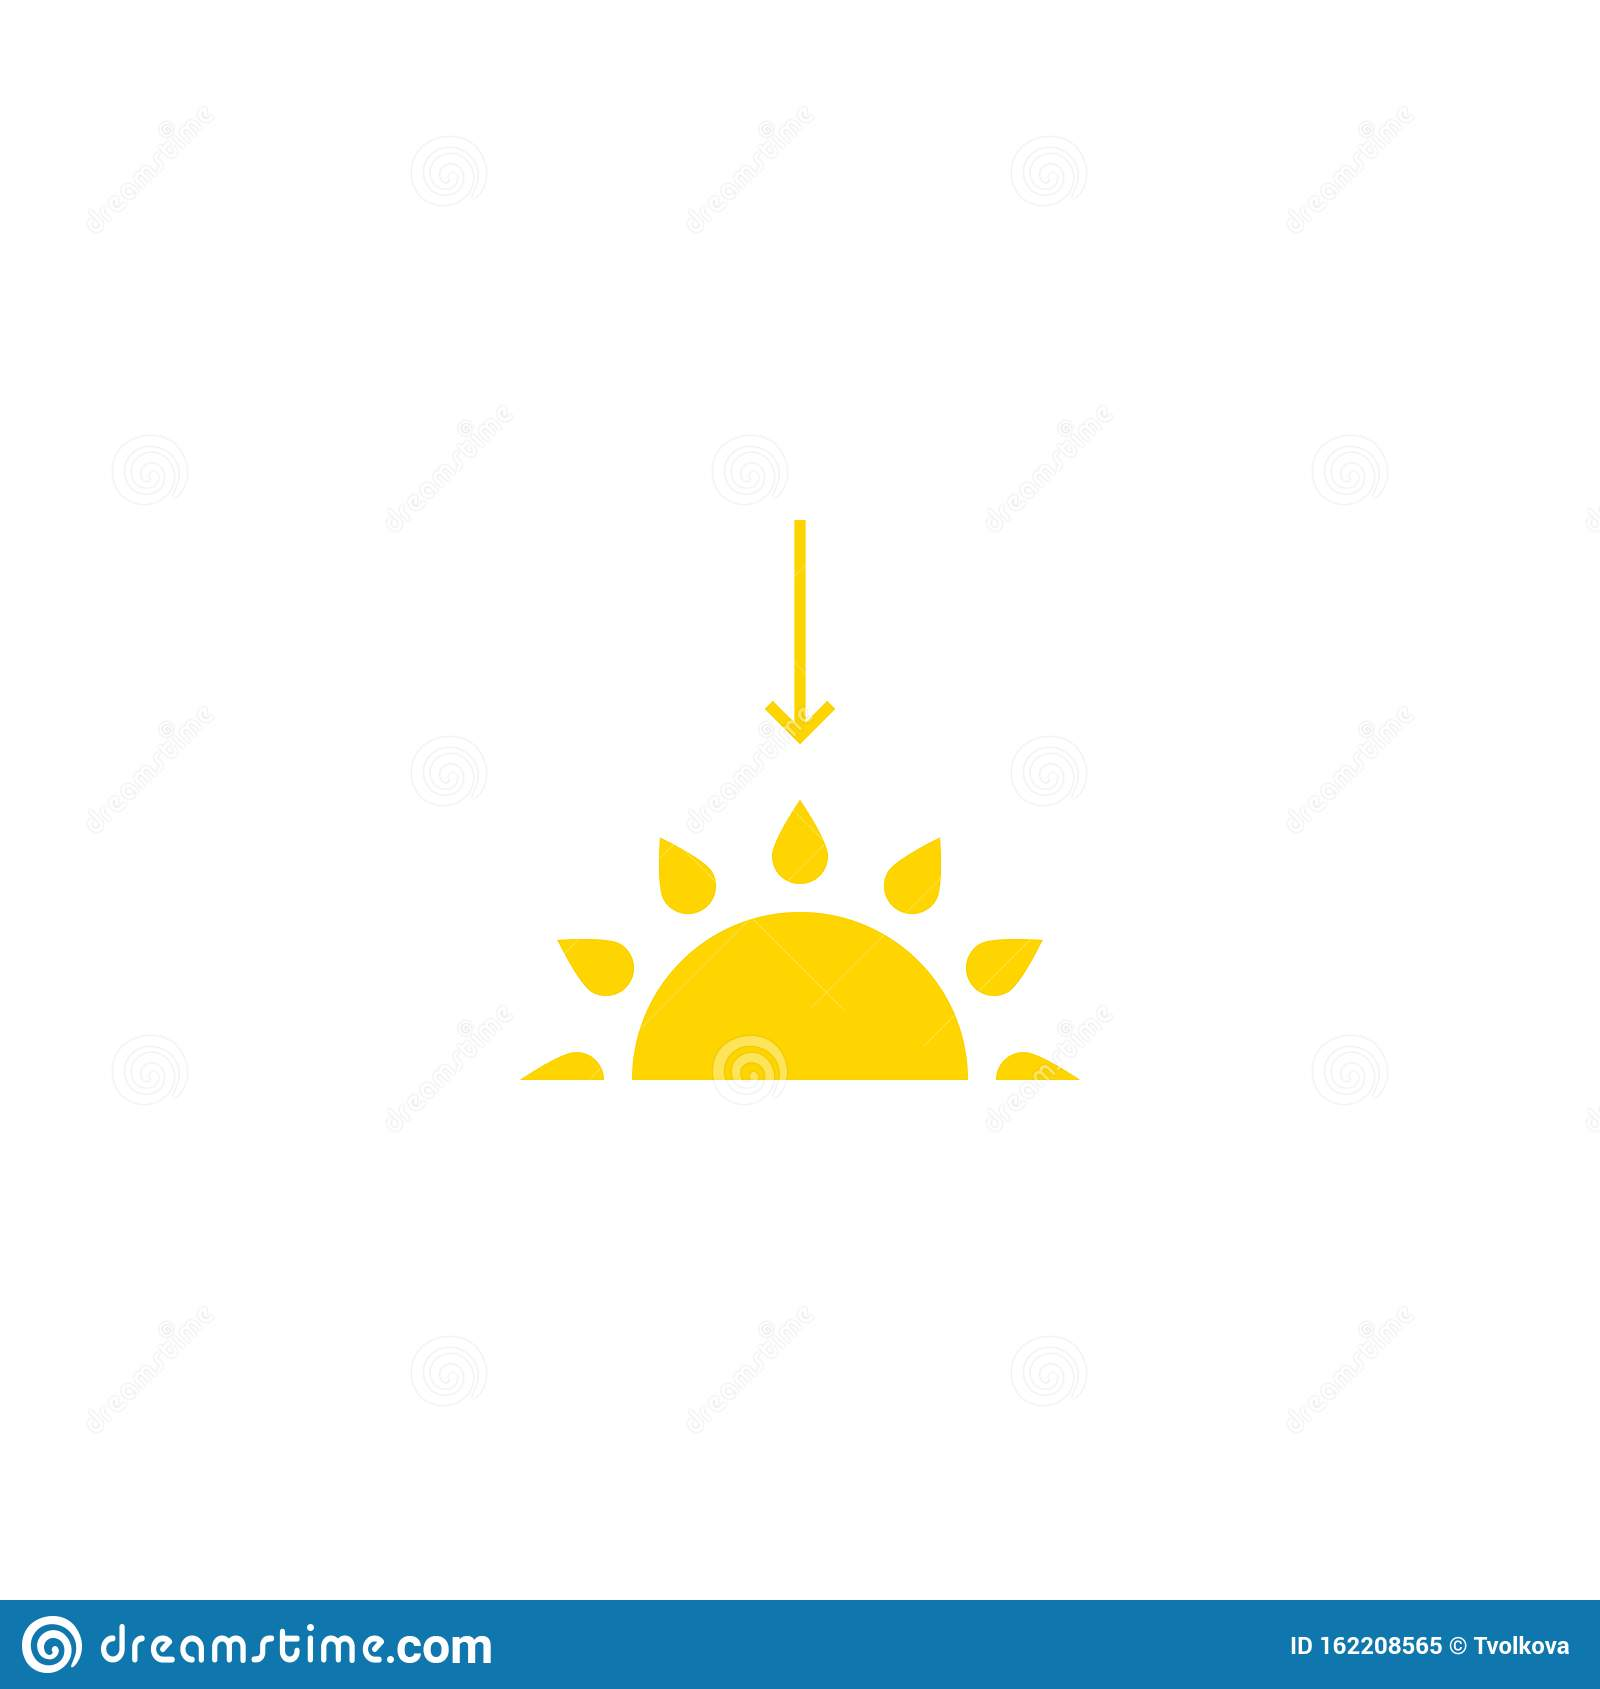 weather icon sunset icon vector isolated illustration stock vector illustration of background clipart 162208565 https www dreamstime com weather icon sunset vector isolated illustration flat simple design can be using posters leaflets banners web mobile app image162208565